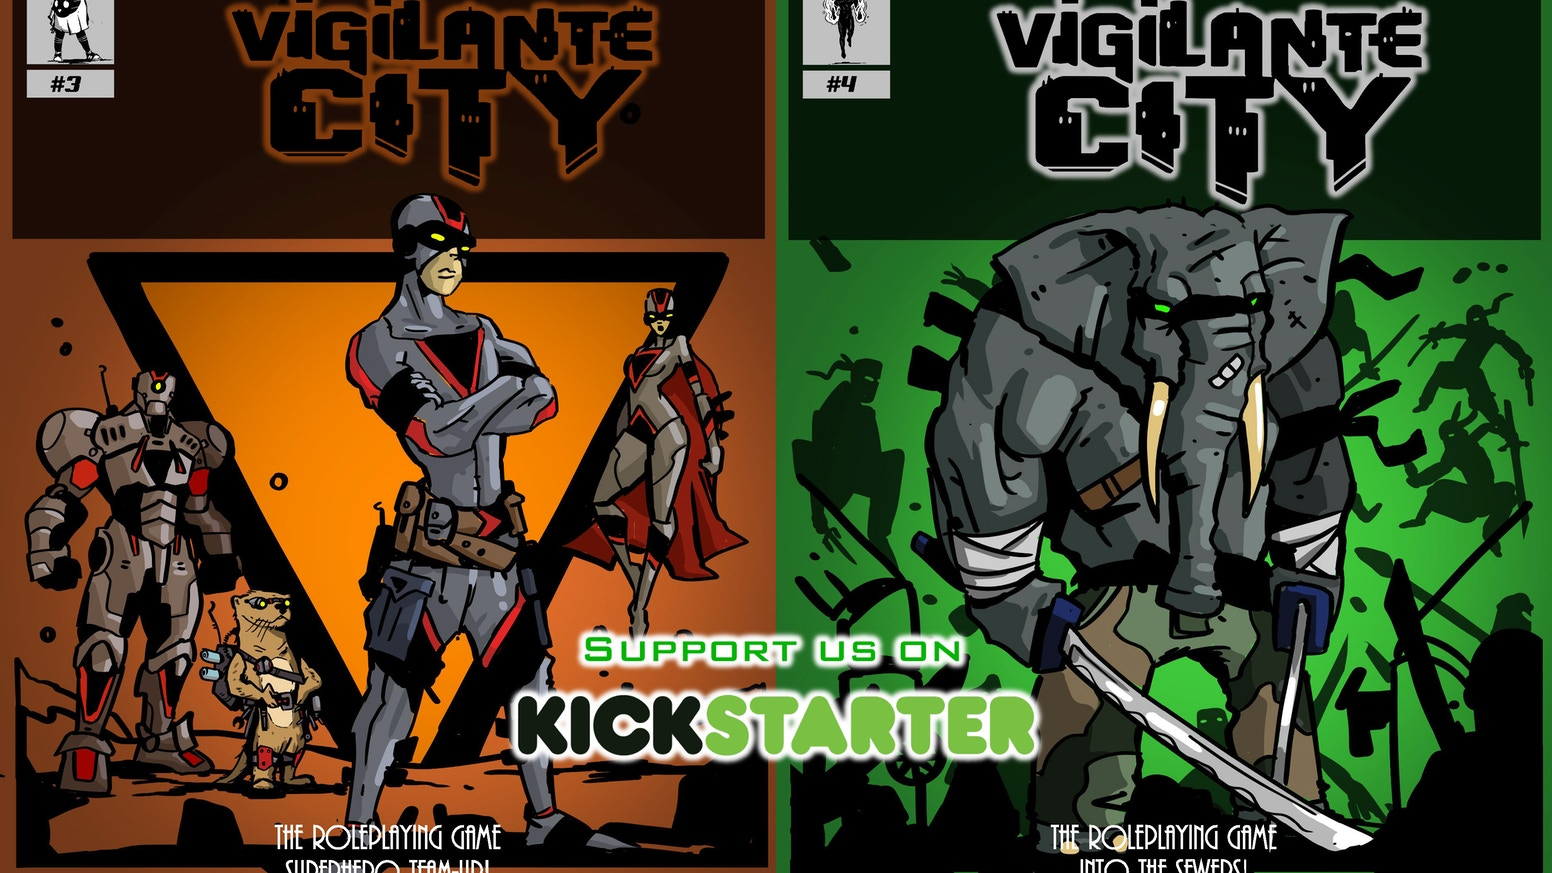 Punch the criminals of Vigilante City in the teeth one adventure at a time!